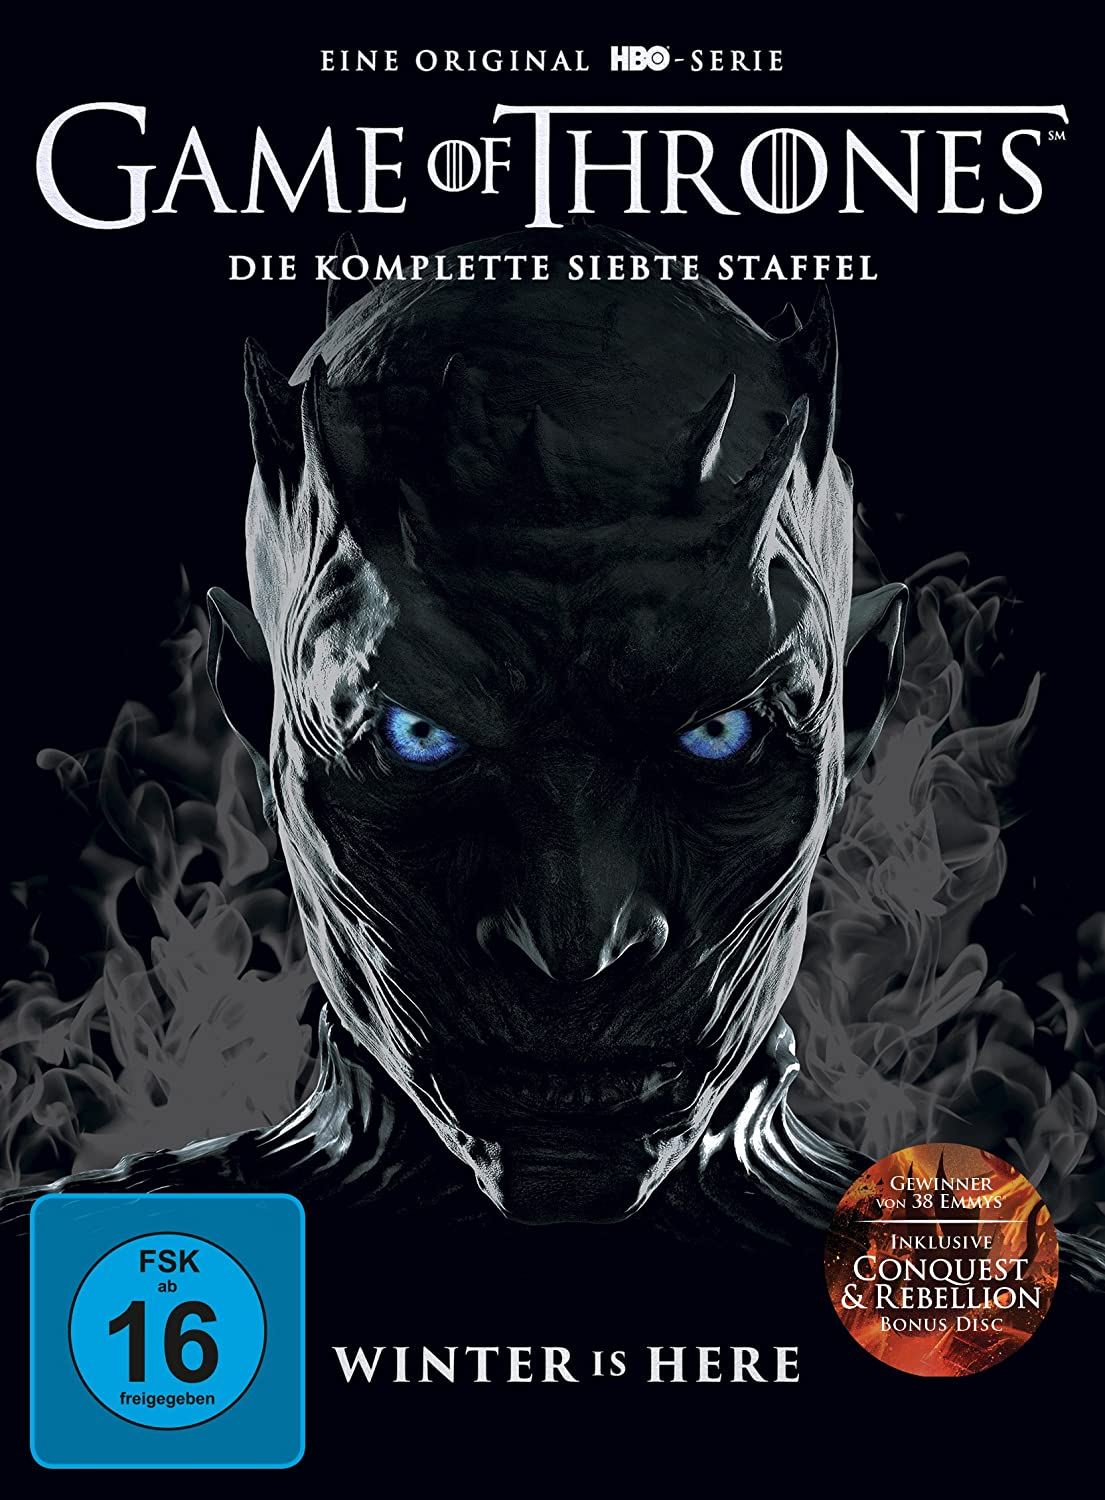 Game Of Thrones 7 Staffel Start